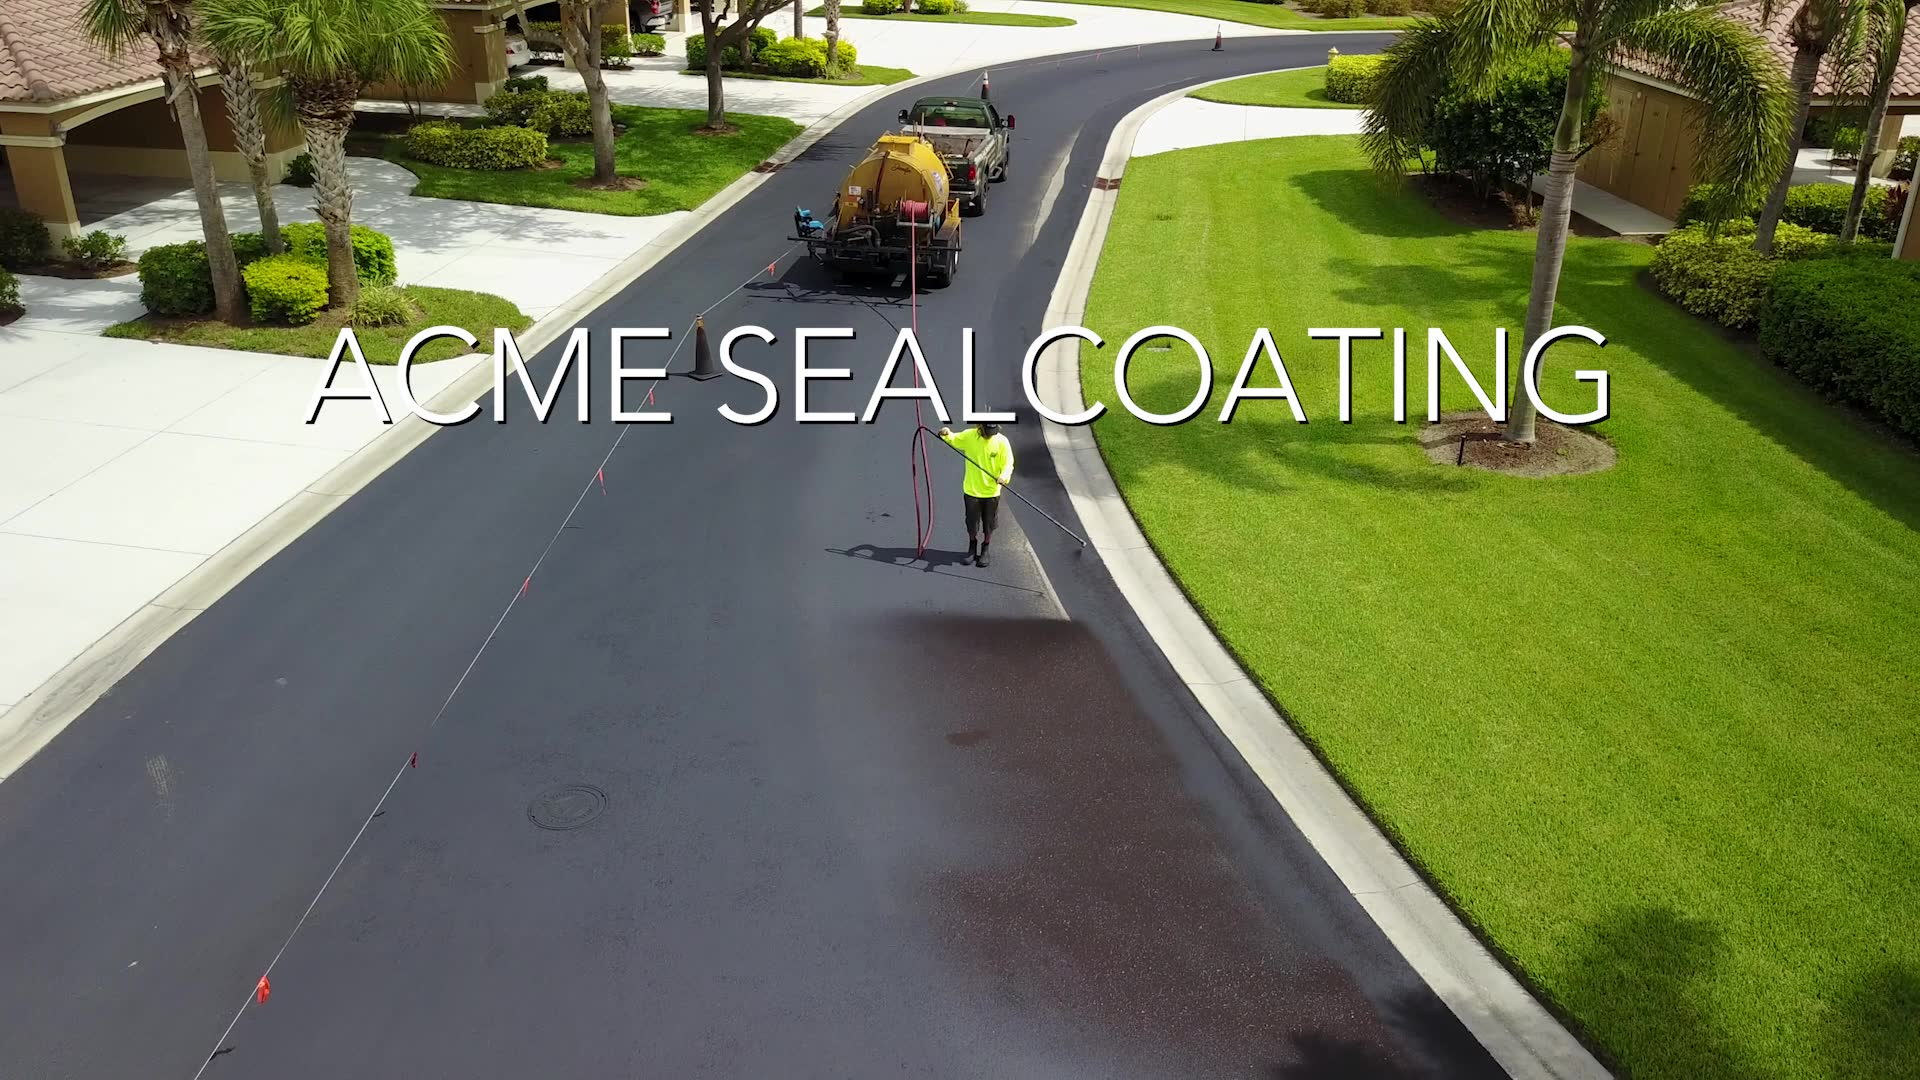 Acme Sealcoating and Paving